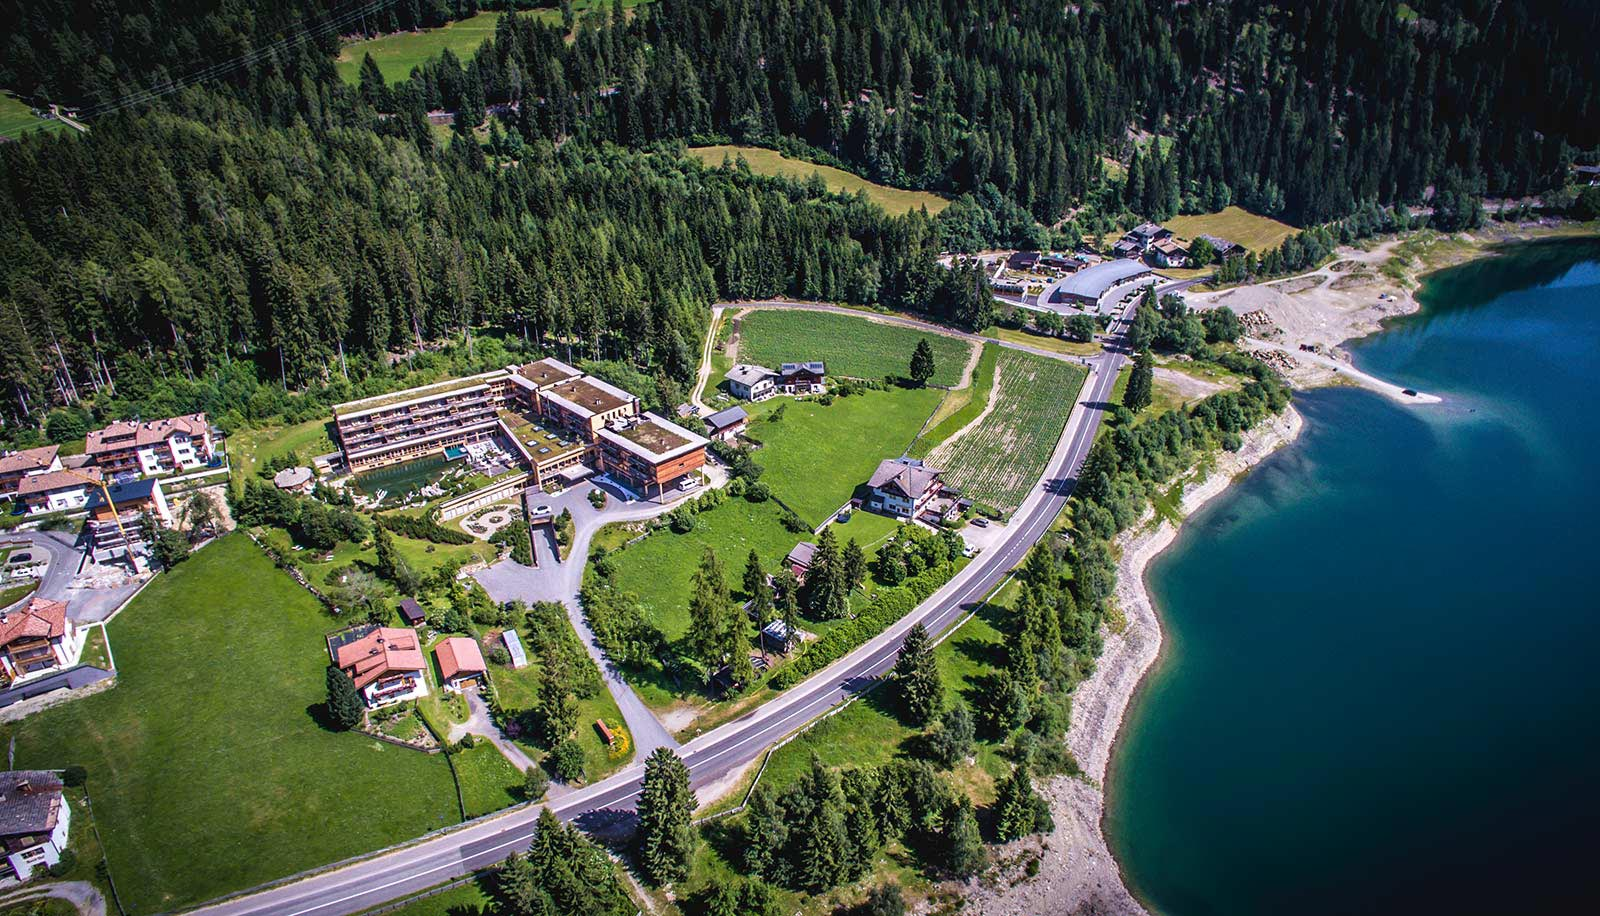 Arosea Hotel in Ultental-Val d'Ultimo on the shore of the lake seen from above